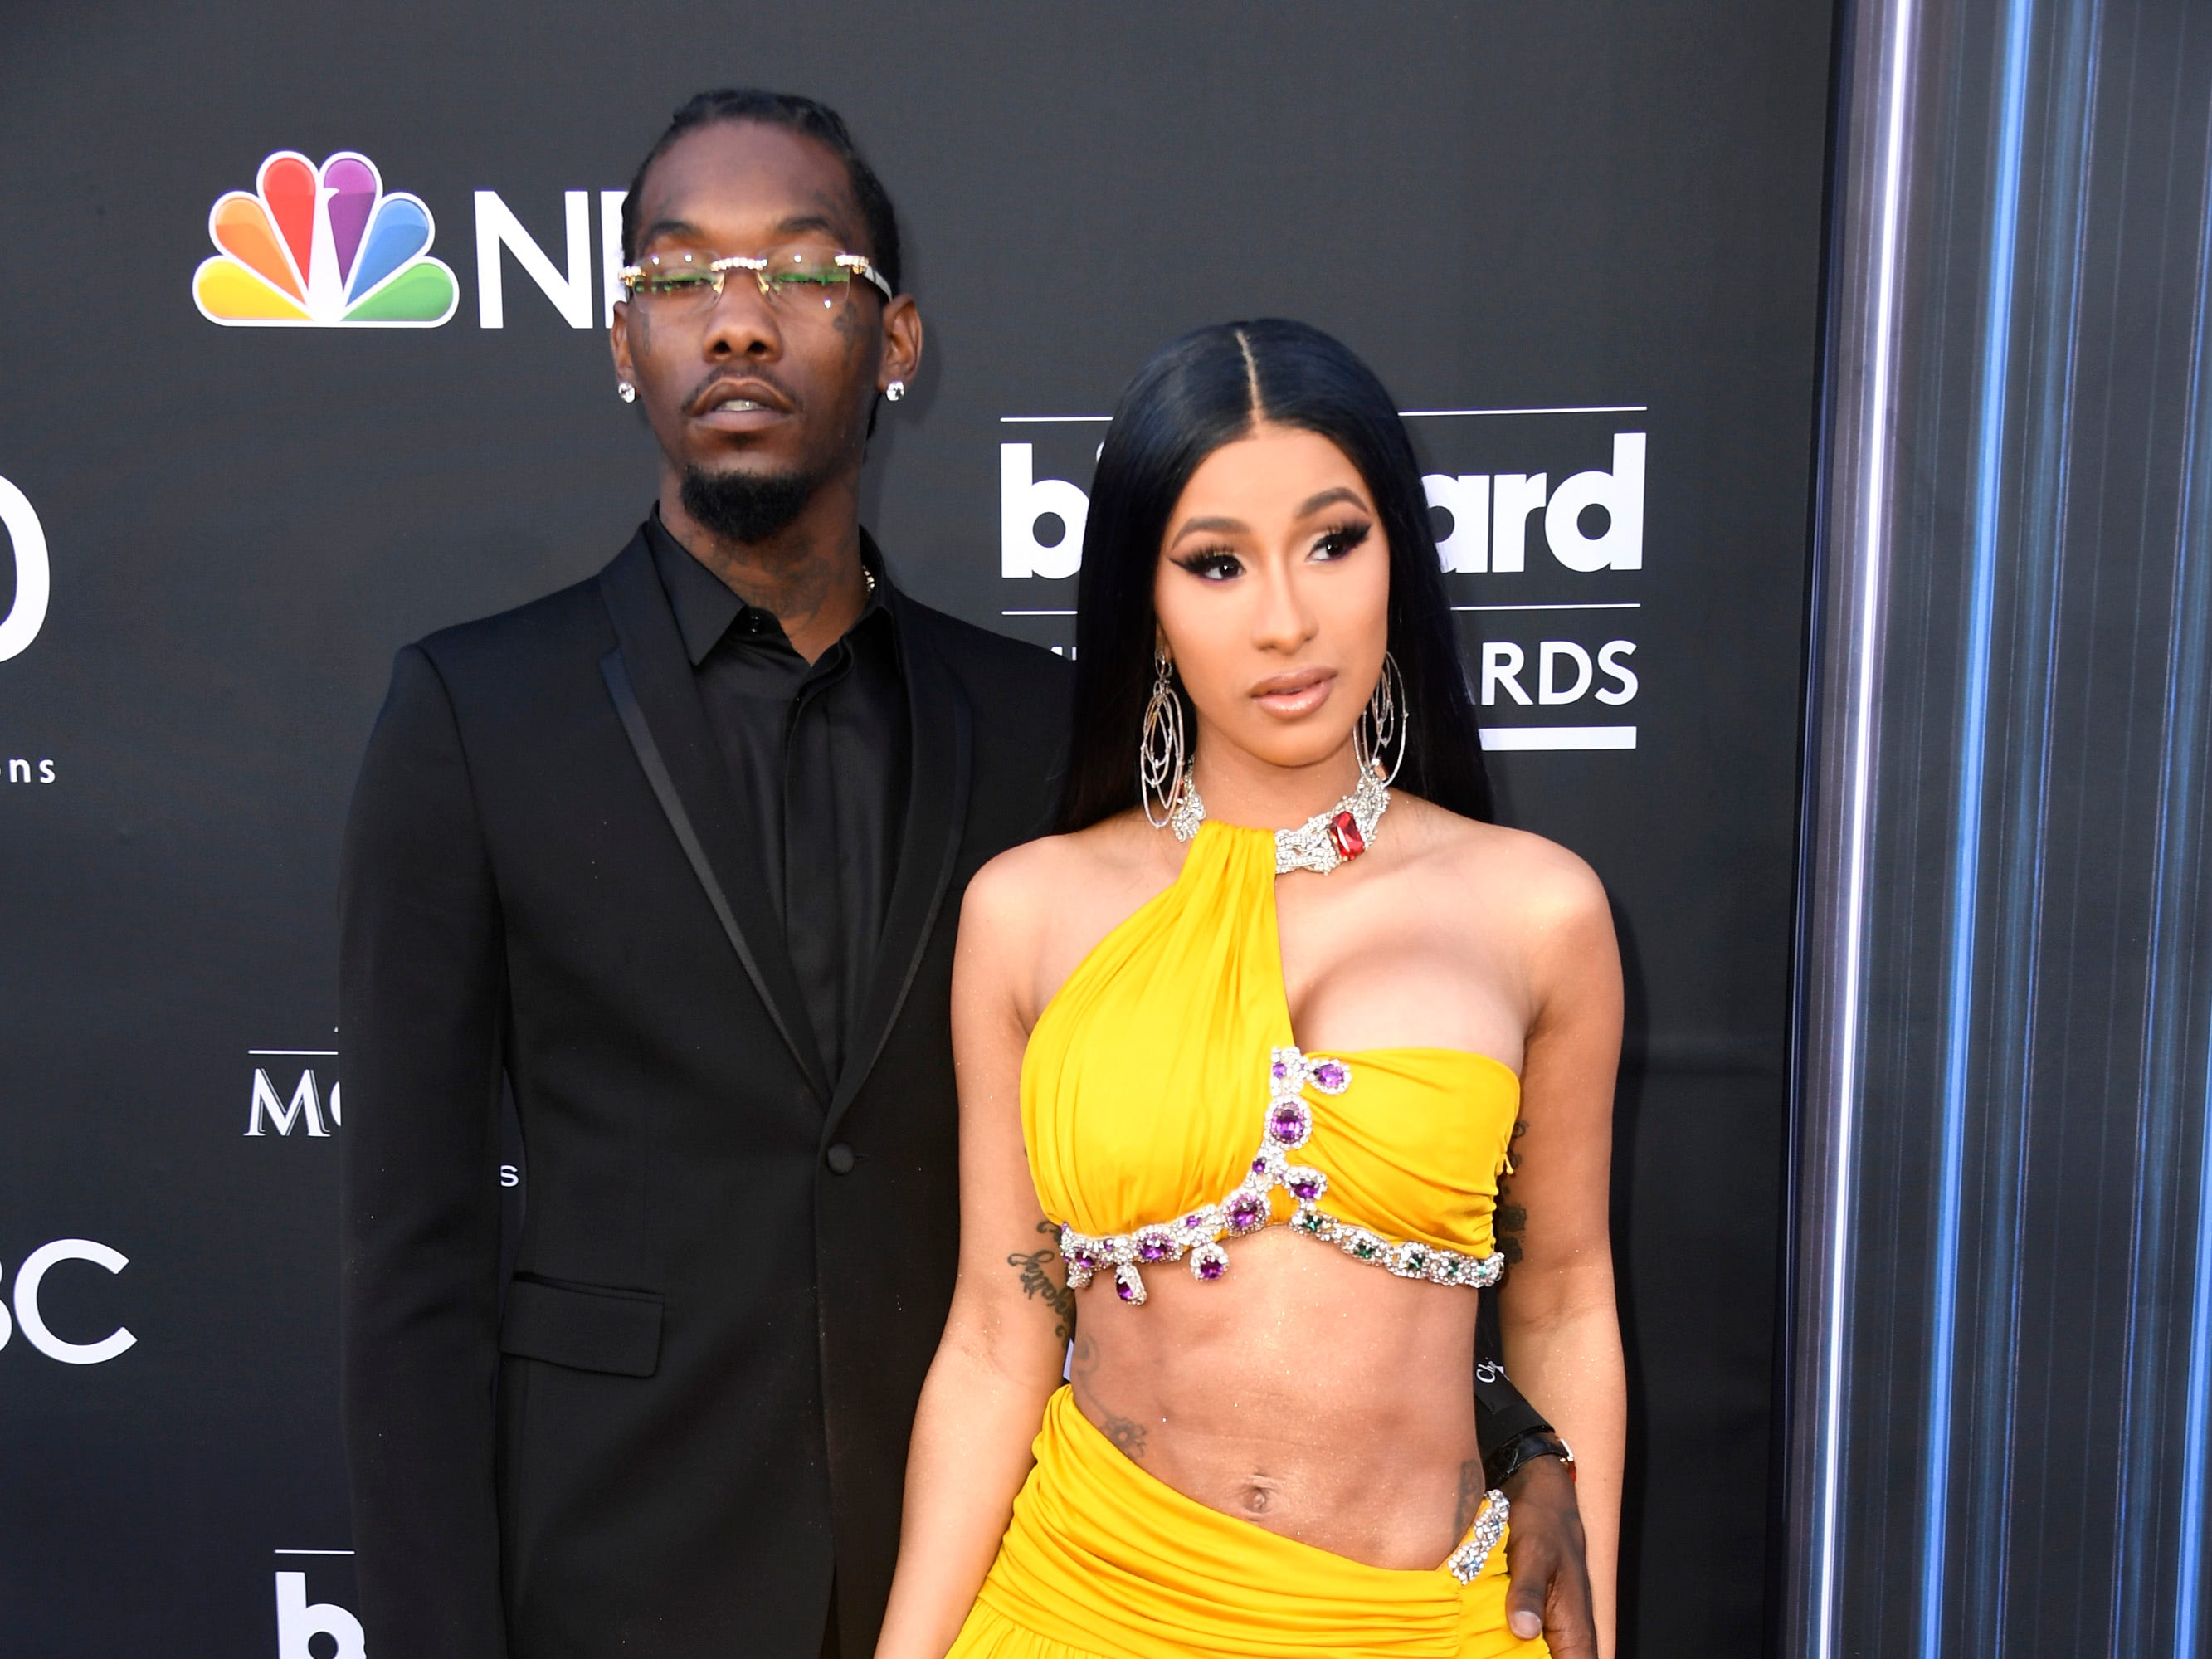 Offset of Migos and Cardi B attend the 2019 Billboard Music Awards at MGM Grand Garden Arena on May 01, 2019 in Las Vegas, Nevada.